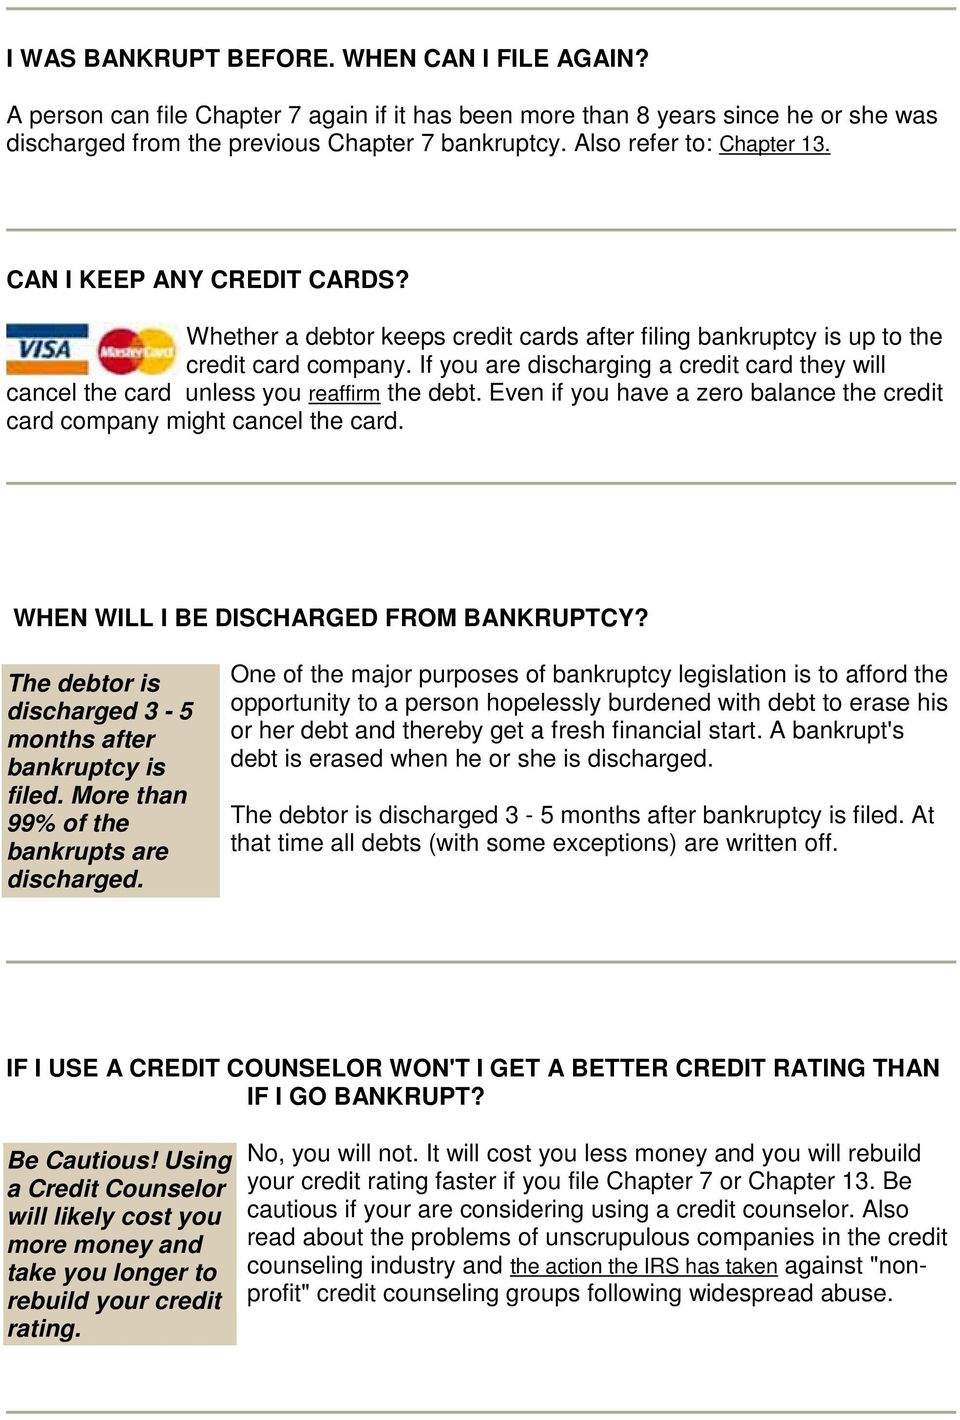 If you are discharging a credit card they will cancel the card unless you reaffirm the debt. Even if you have a zero balance the credit card company might cancel the card.